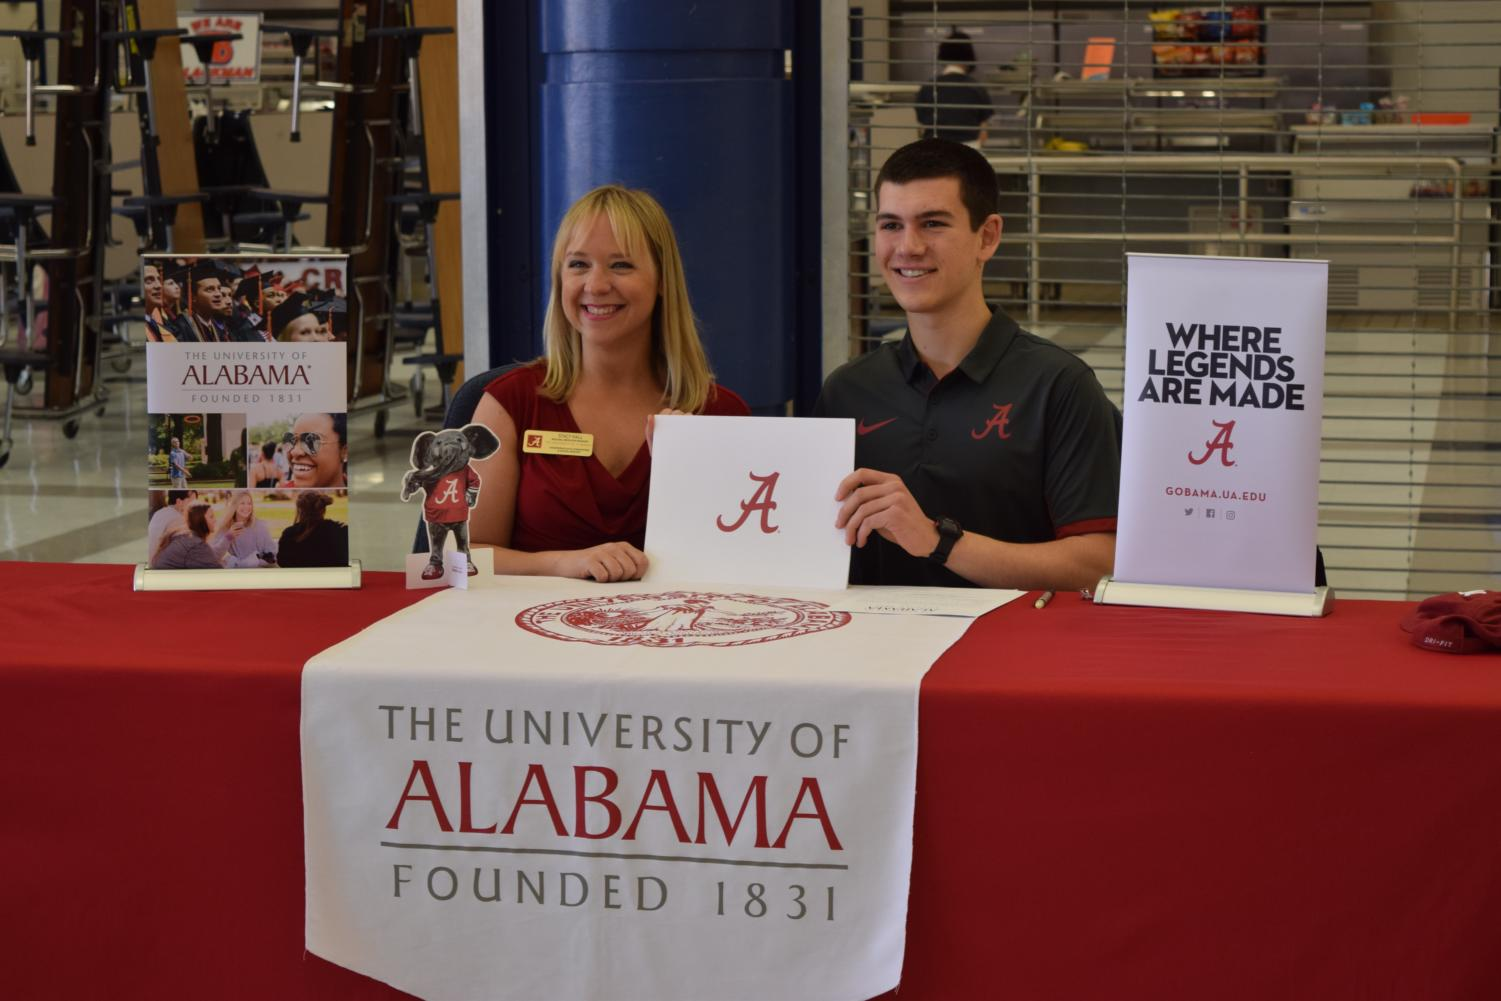 Luke+Porter+will+attend+the+University+of+Alabama++in+the+fall.